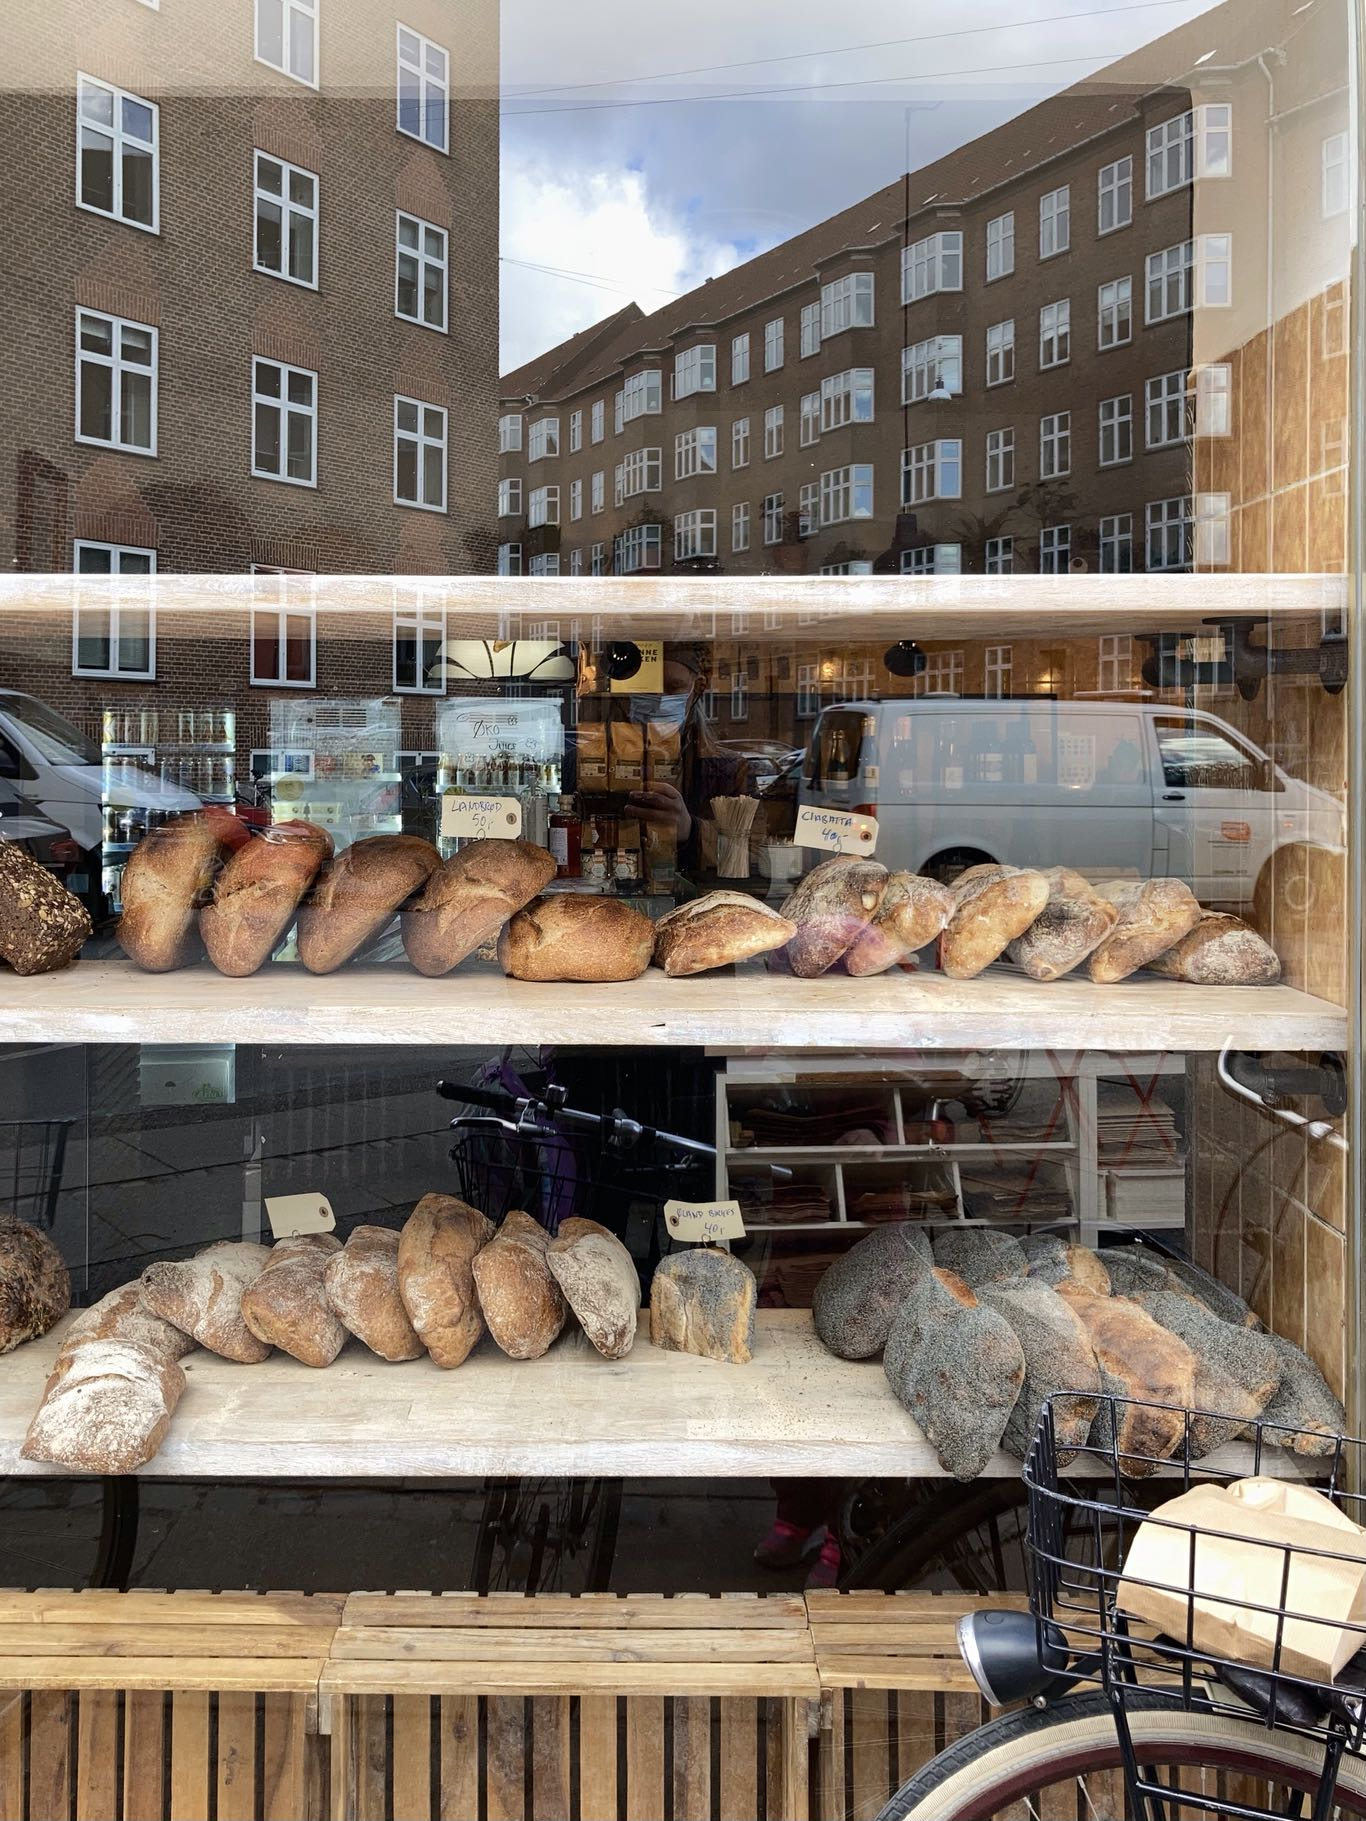 Looking through the window of 'Vores Brød', our local bakery, as we waited our turn (only two allowed in at a time). The sun a little behind the clouds as I took the picture, so there's not too much of my reflection in the window, but still managed to catch the van driving by. Fully organic, all sourdough. Very nice people. It's actually not our daily bread, but at least once a week it's great to get some of their goodies (the pastries are wonderful too).